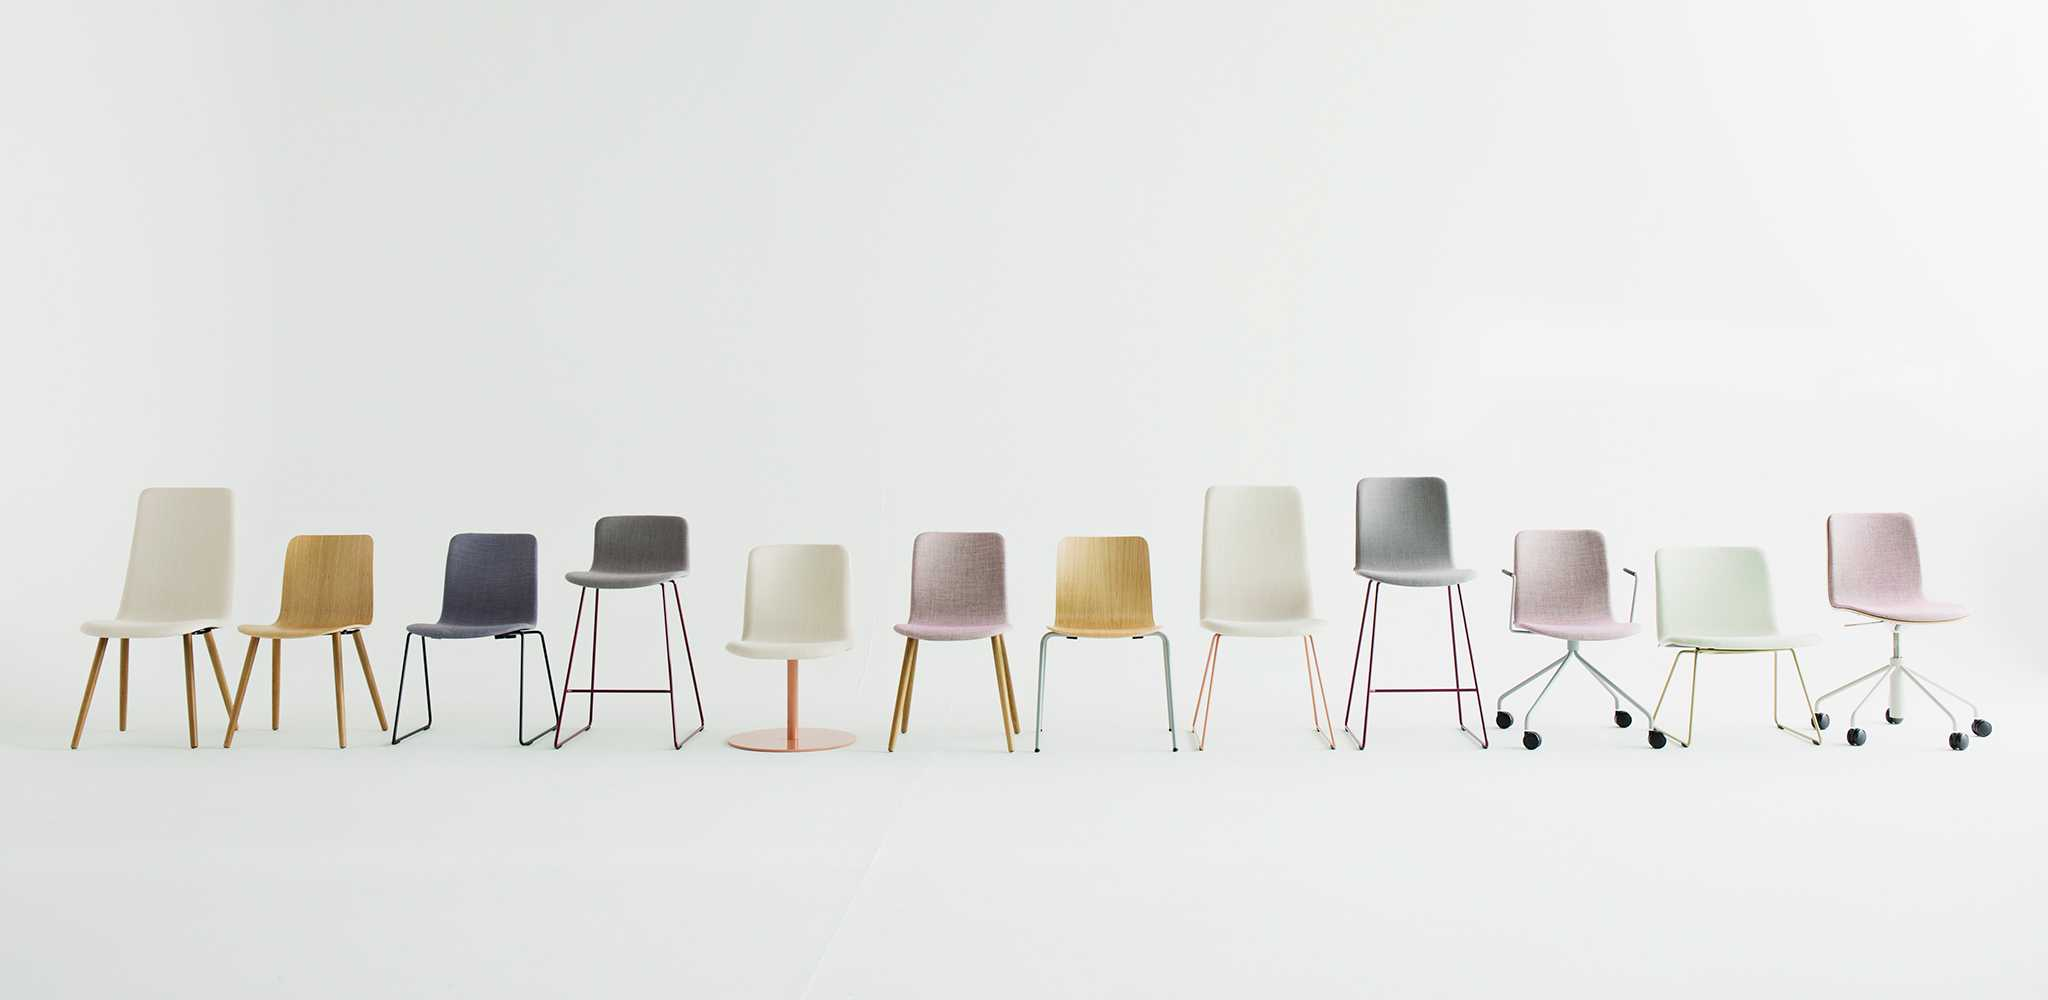 Sola chairs in a row